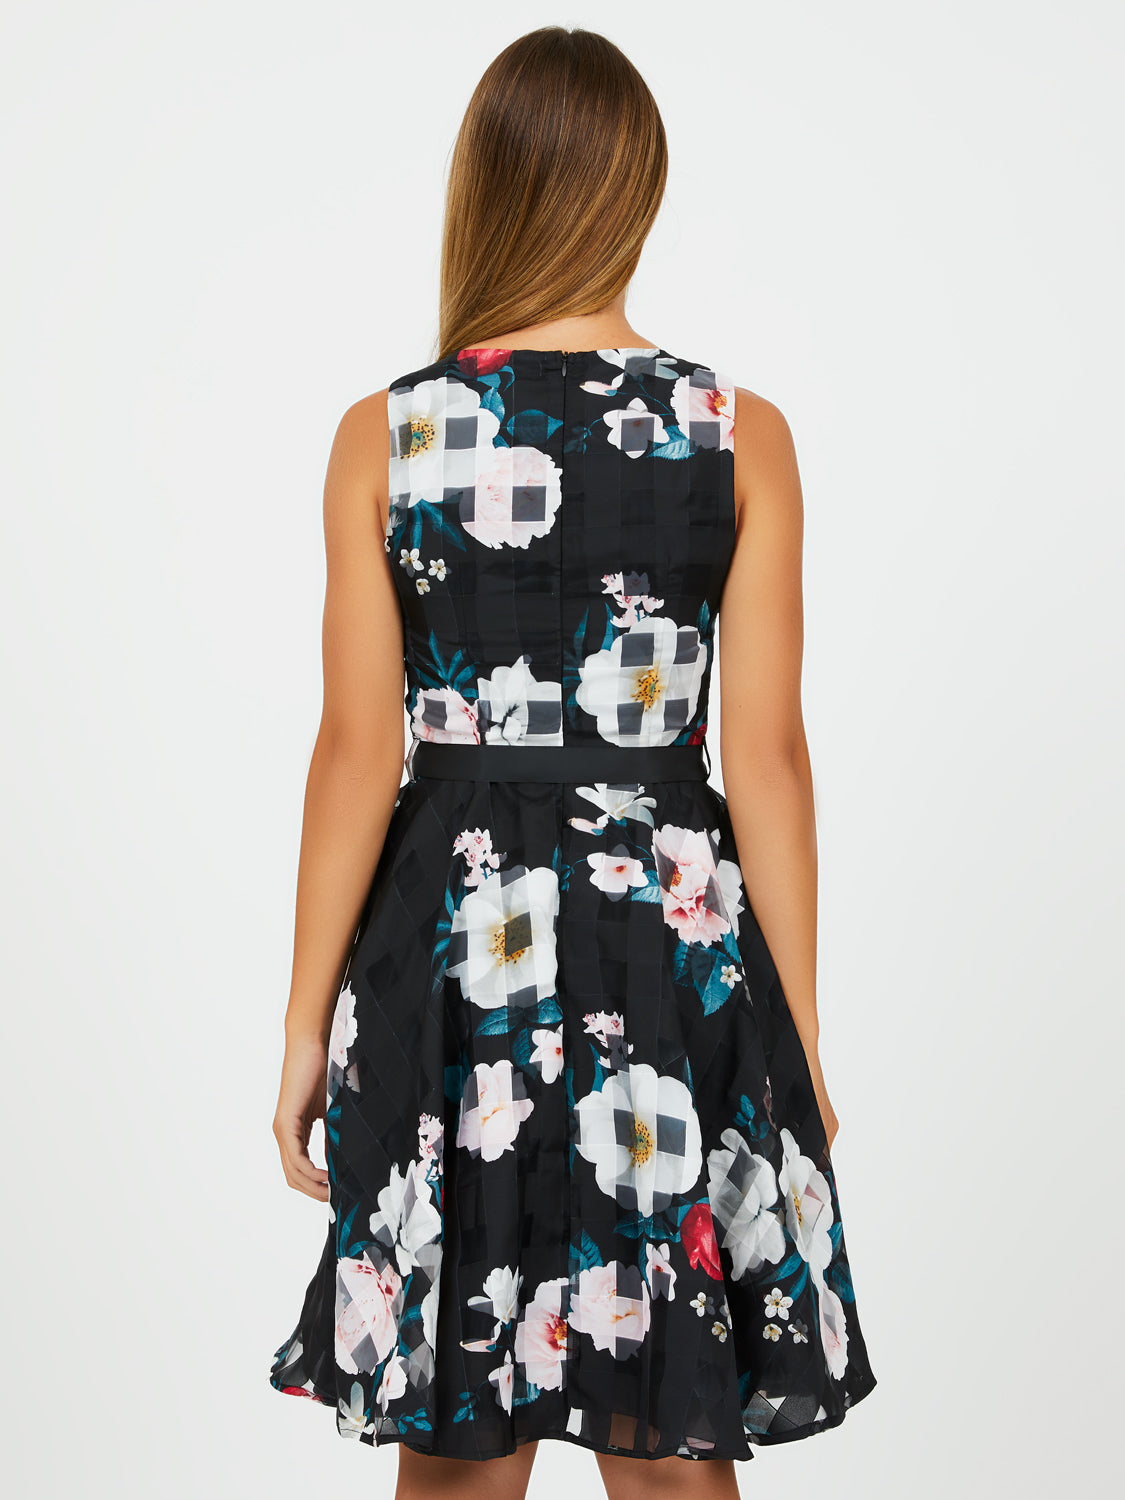 Shadow Floral Print Fit & Flare Dress